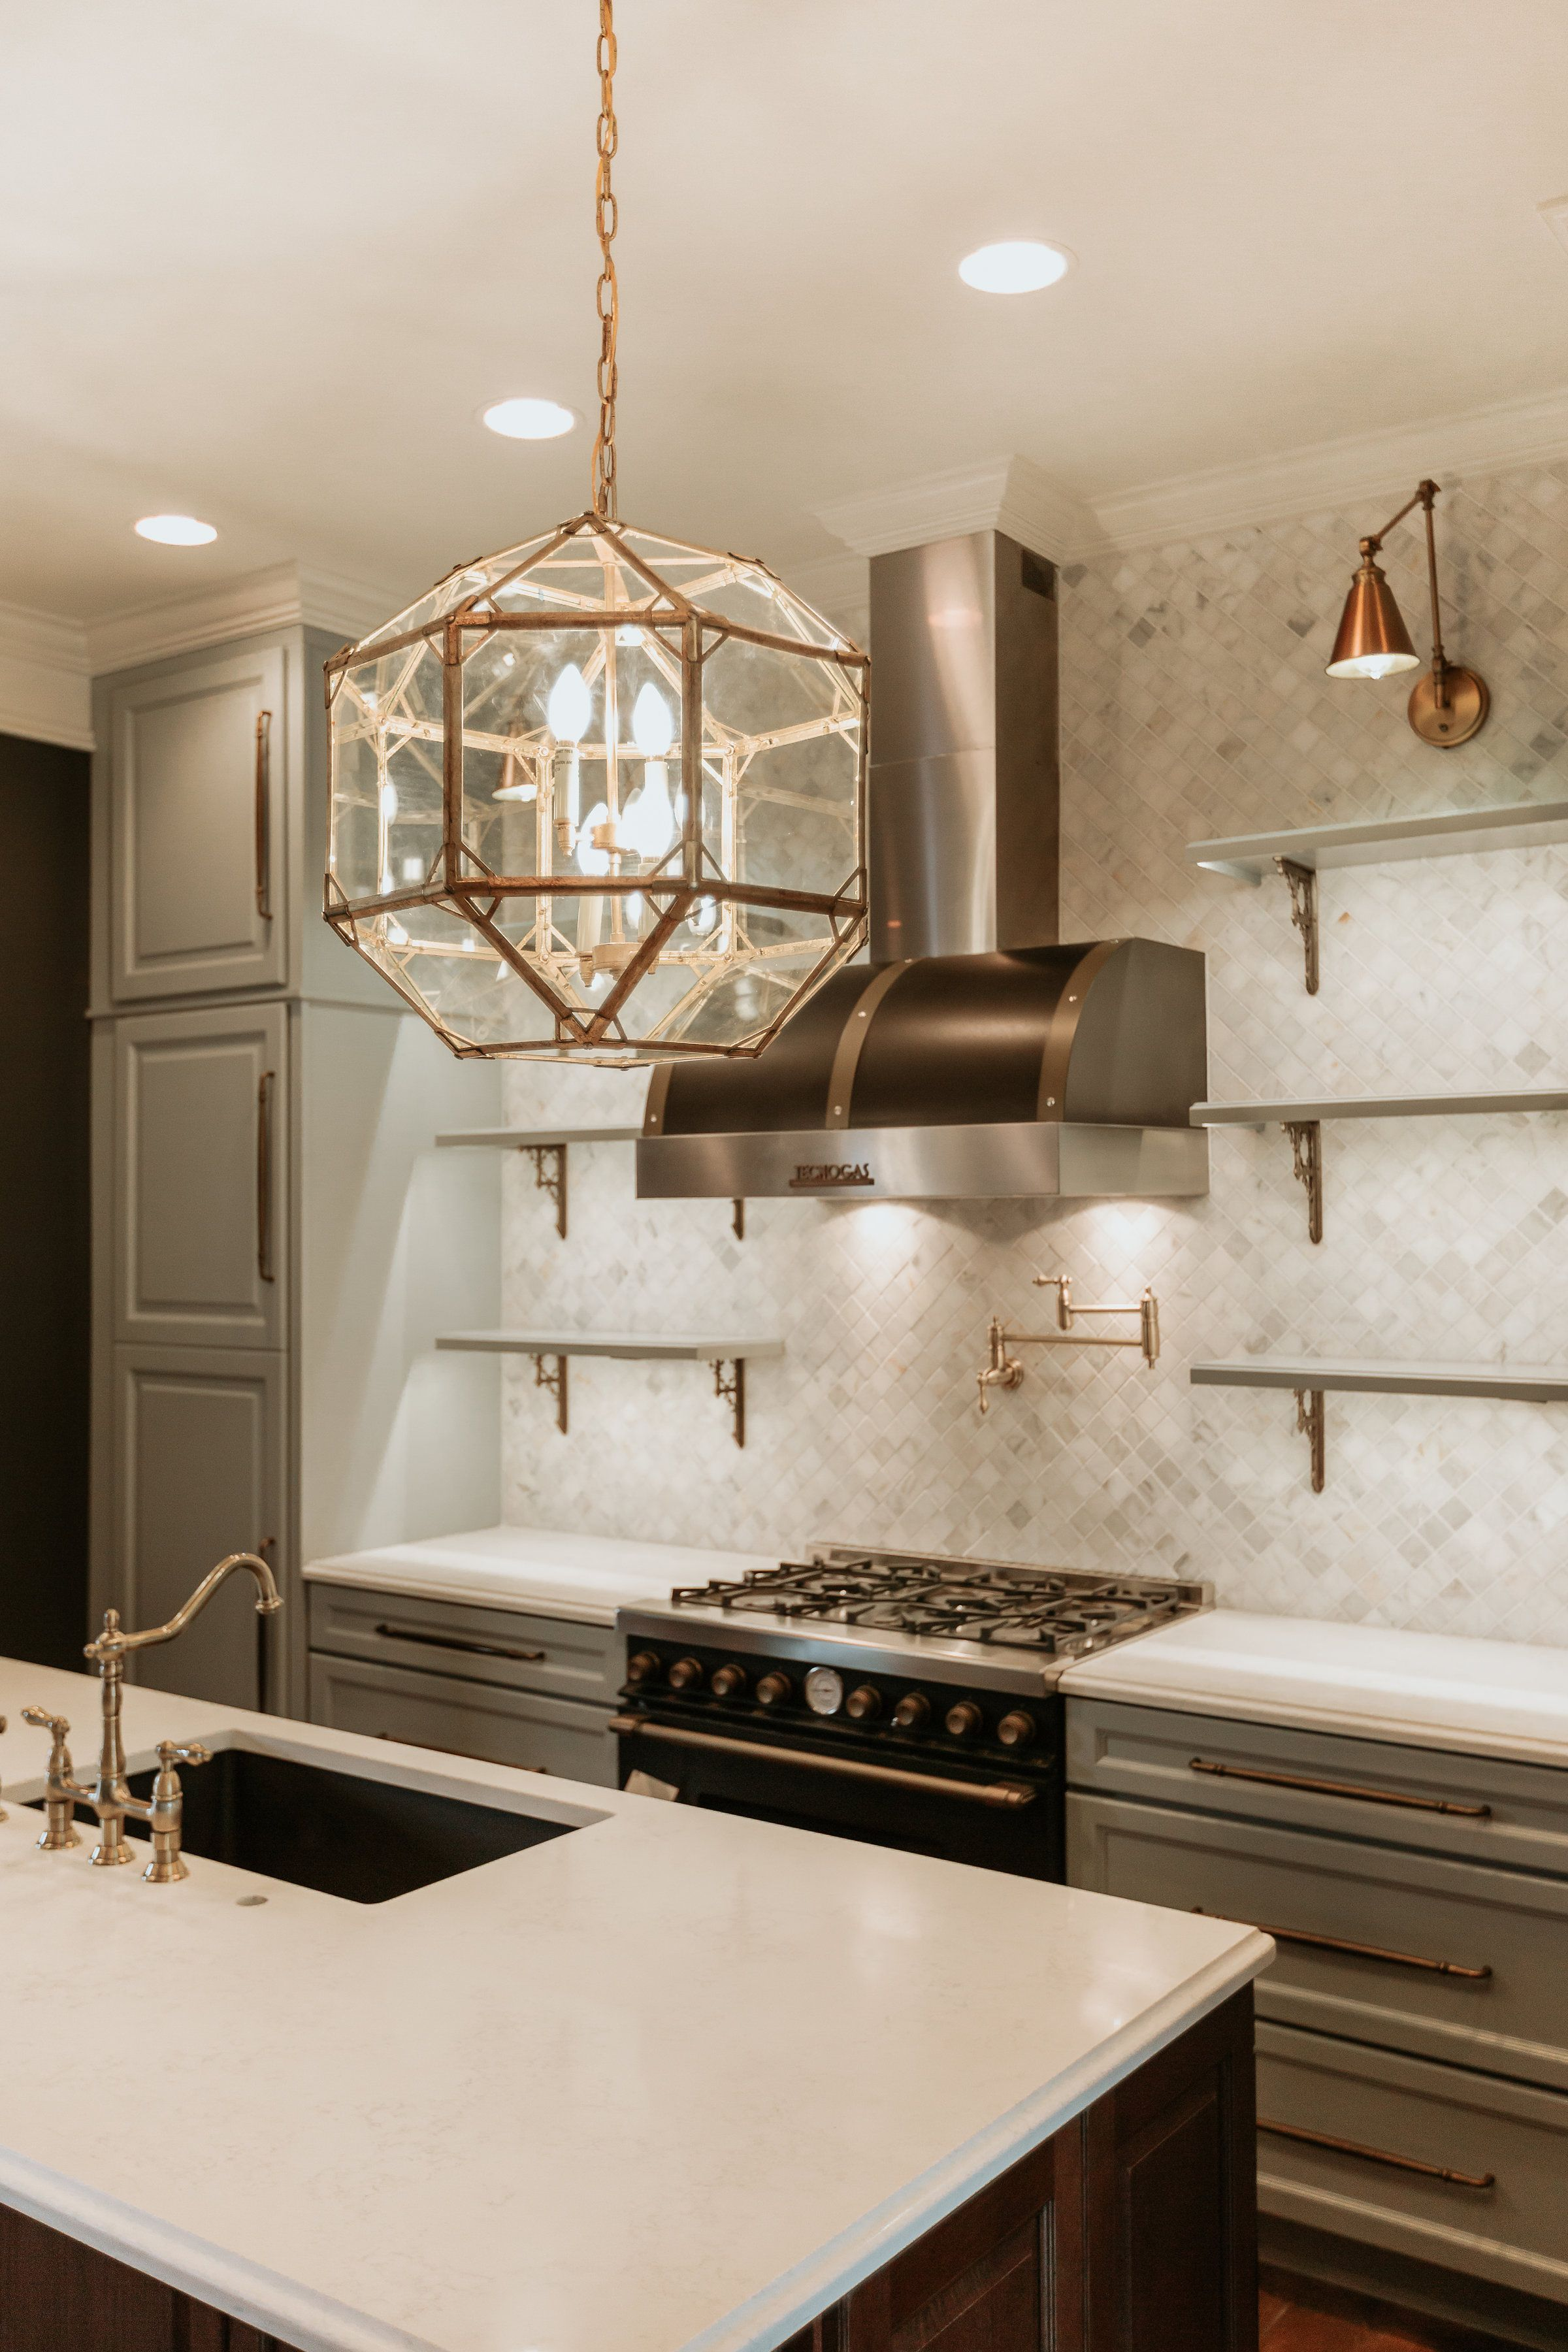 built by mike stevens homes inc knoxville tn farmhouse kitchen countertops modern on farmhouse kitchen decor countertop id=12934